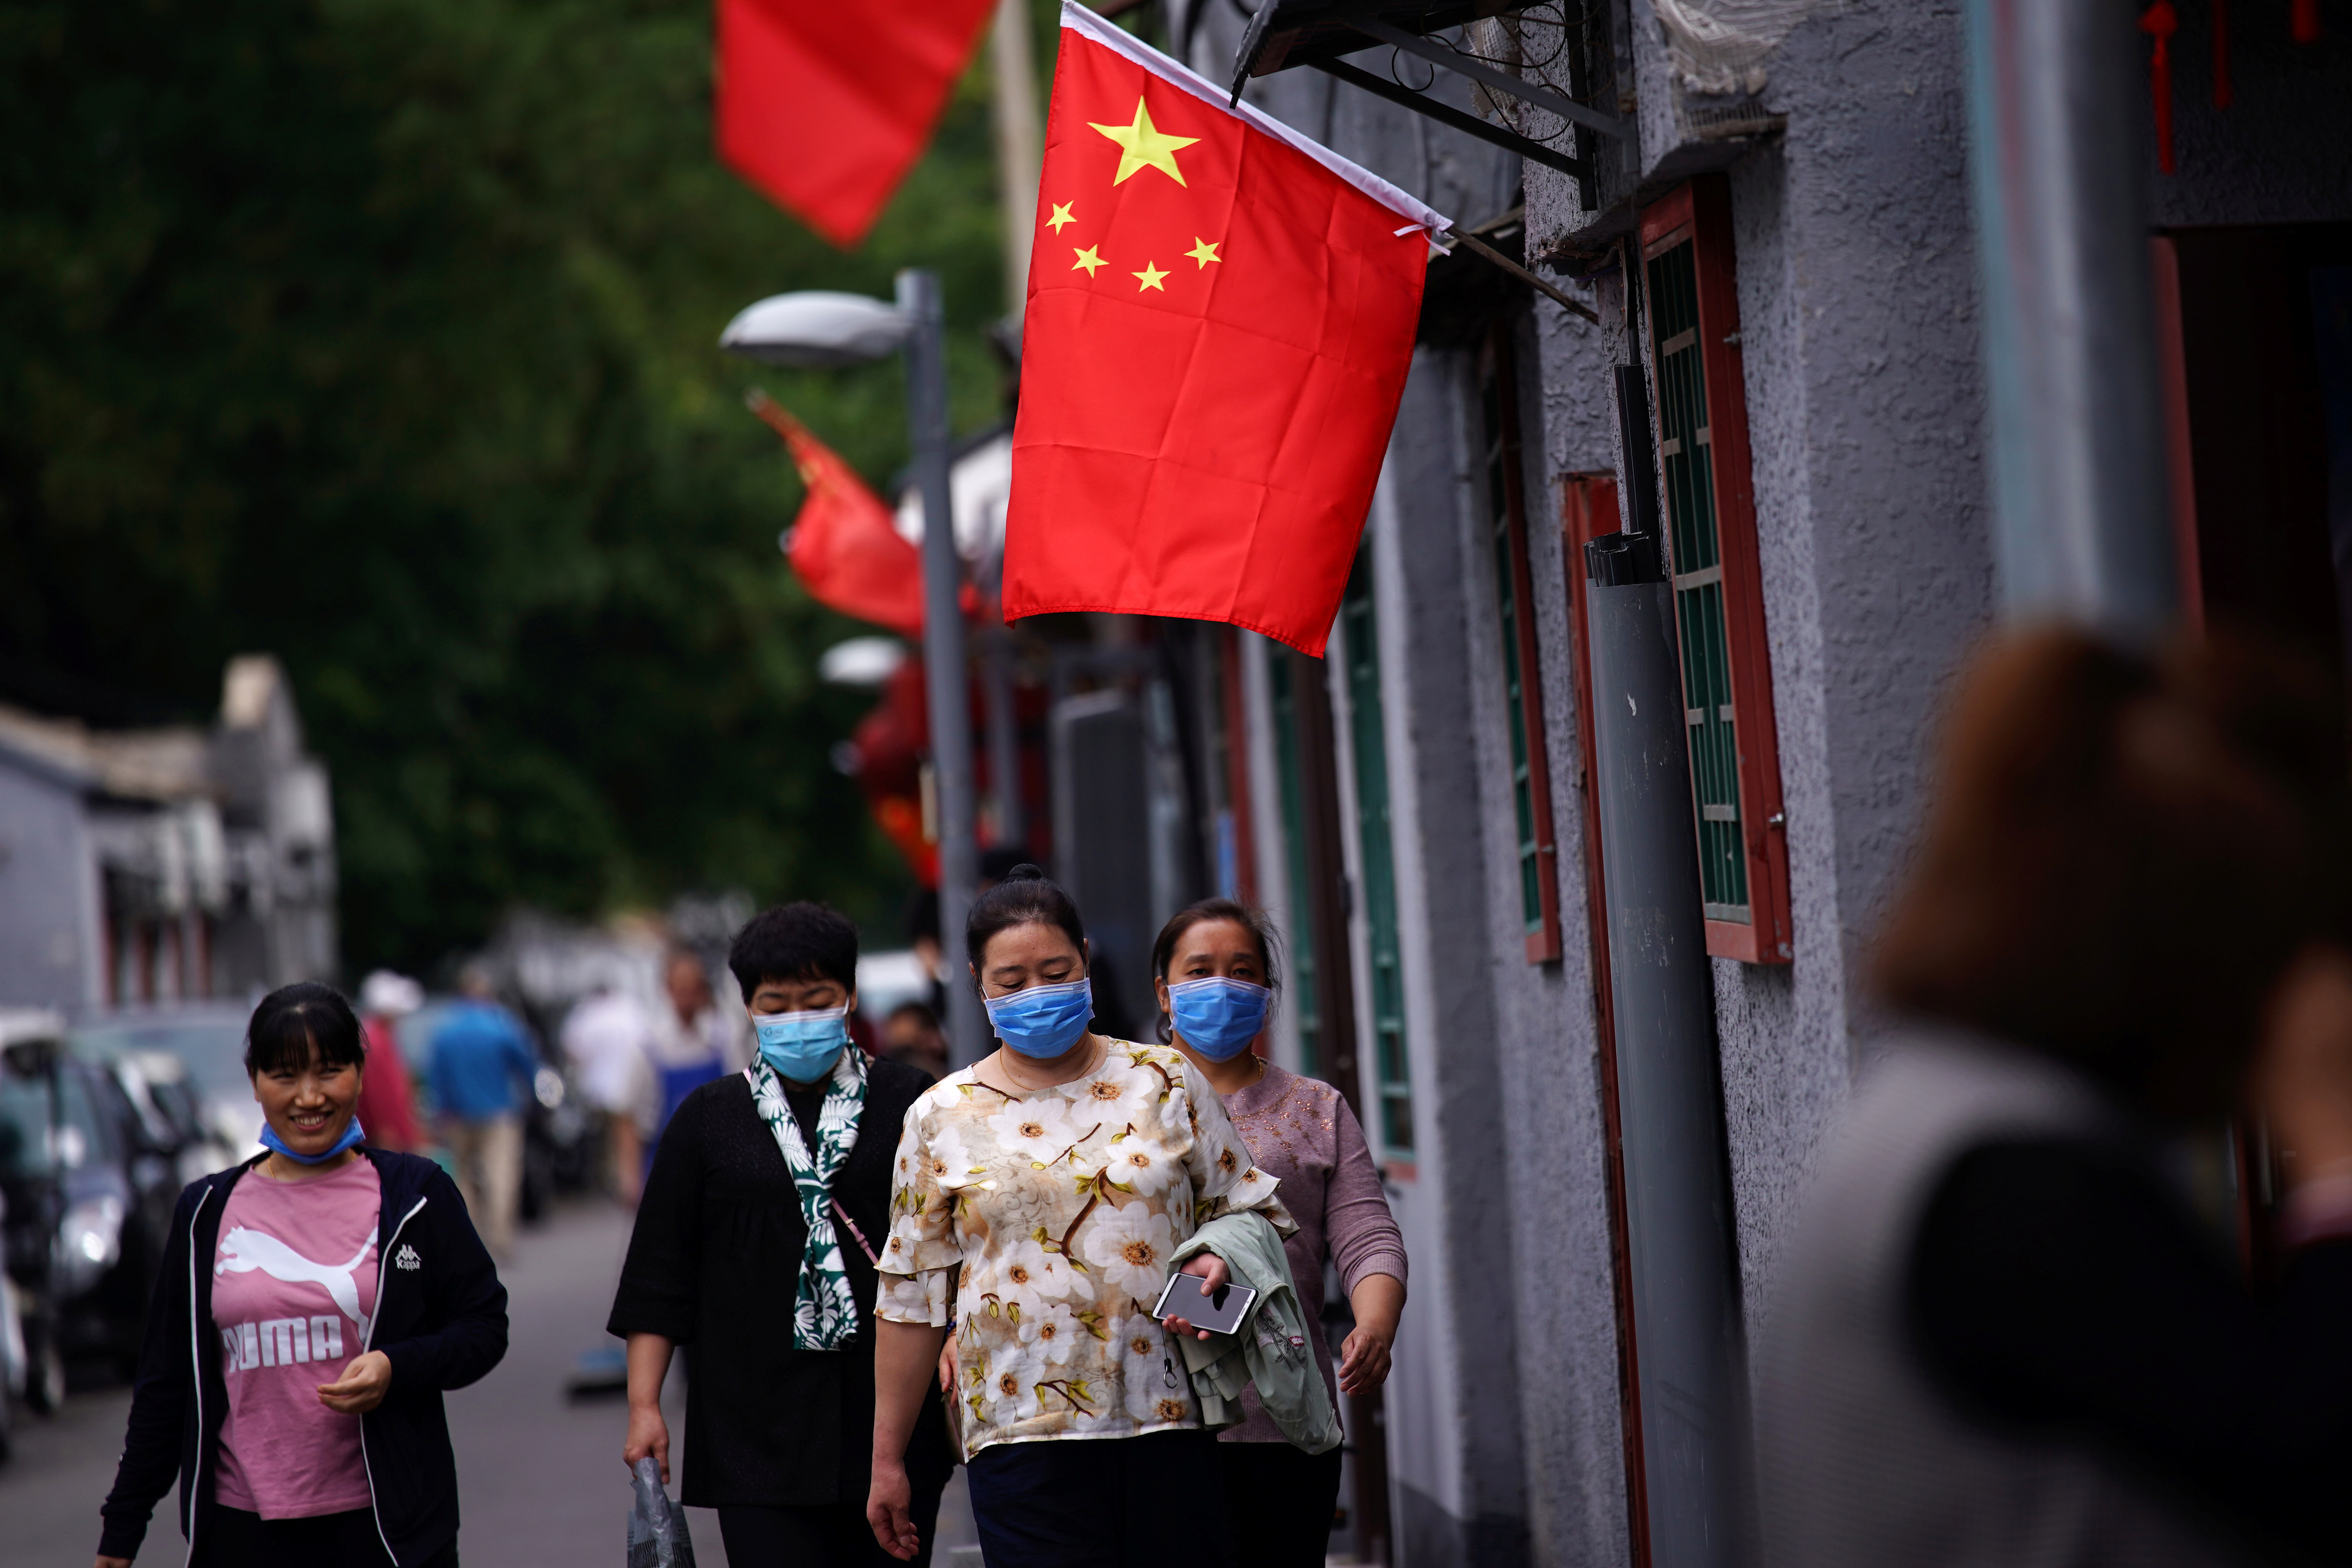 People wearing face masks following the coronavirus disease (COVID-19) outbreak walk at a hutong alley with Chinese national flags hung aside ahead of the Chinese National Day on October 1, in Beijing, China September 29, 2020. REUTERS/Tingshu Wang/Files